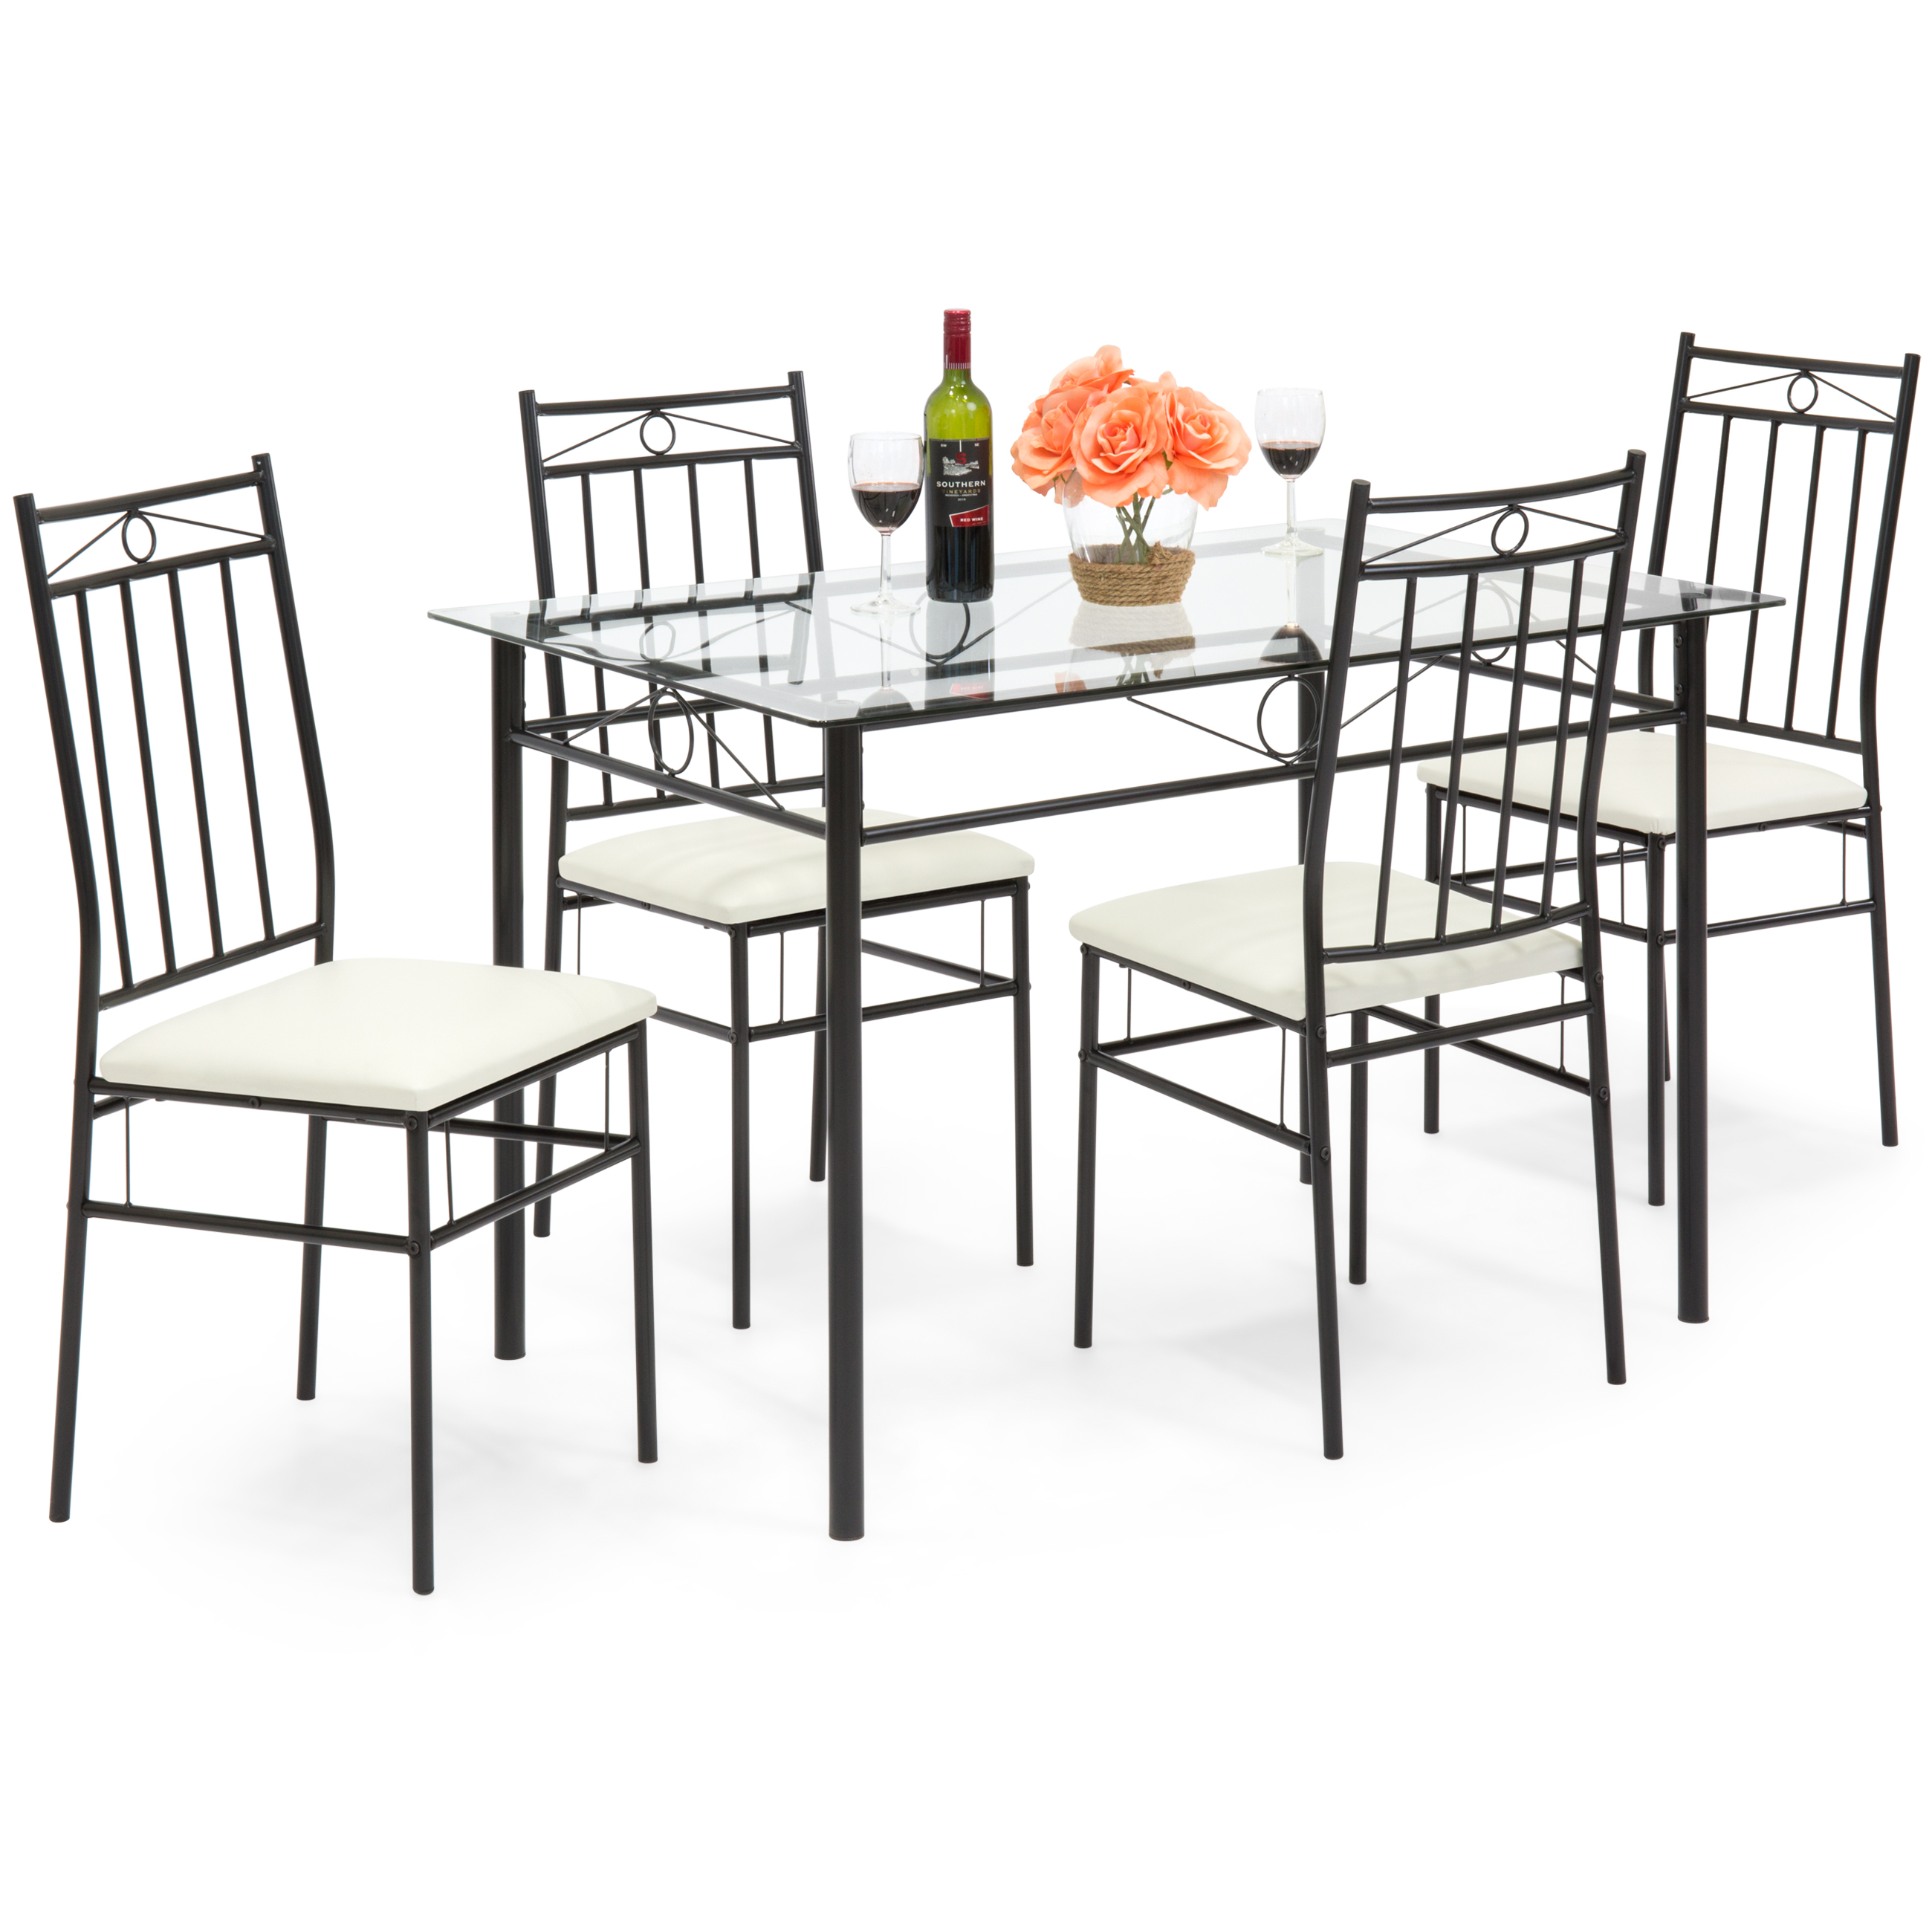 Best Choice Products 5 Piece Modern Glass Table Dining Set